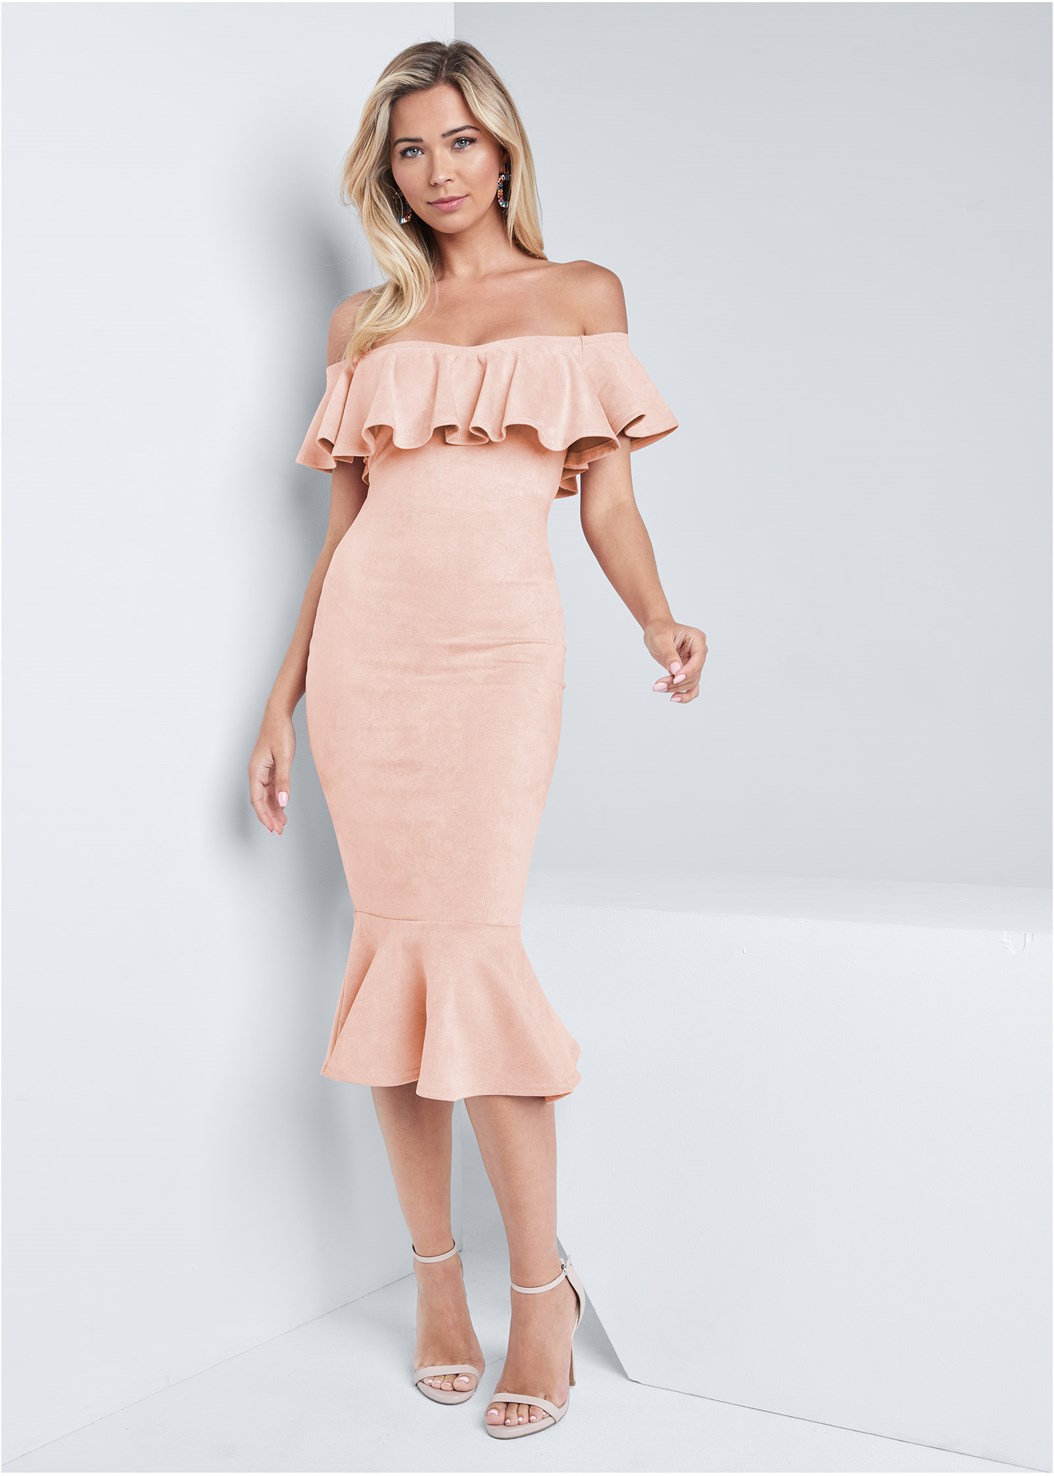 Faux Suede Ruffle Dress,Silicone Backless Lace Bra,Ankle Strap Heels